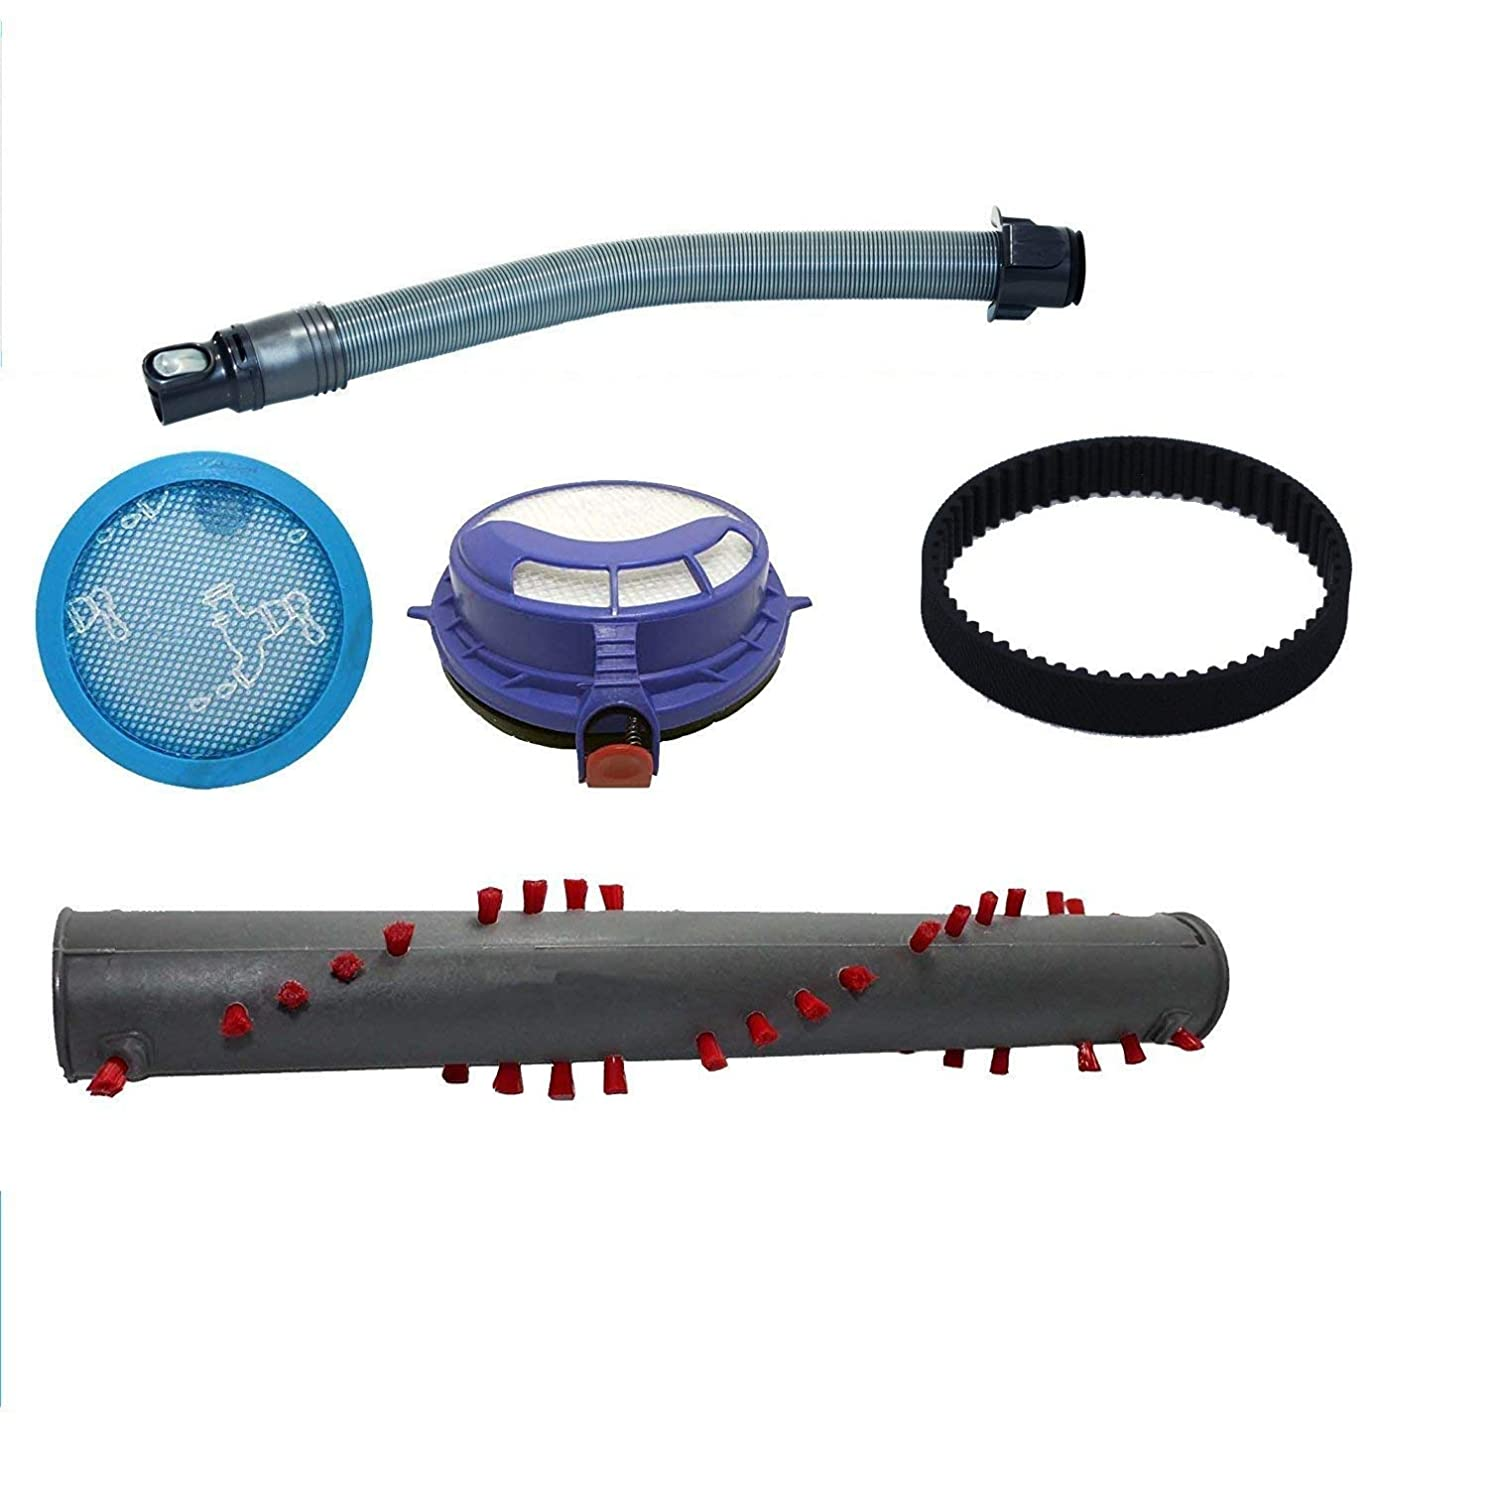 Dyson DC25 Kit Includes Pre and Post Filters, Brushroll, 1 Belt, and Hose